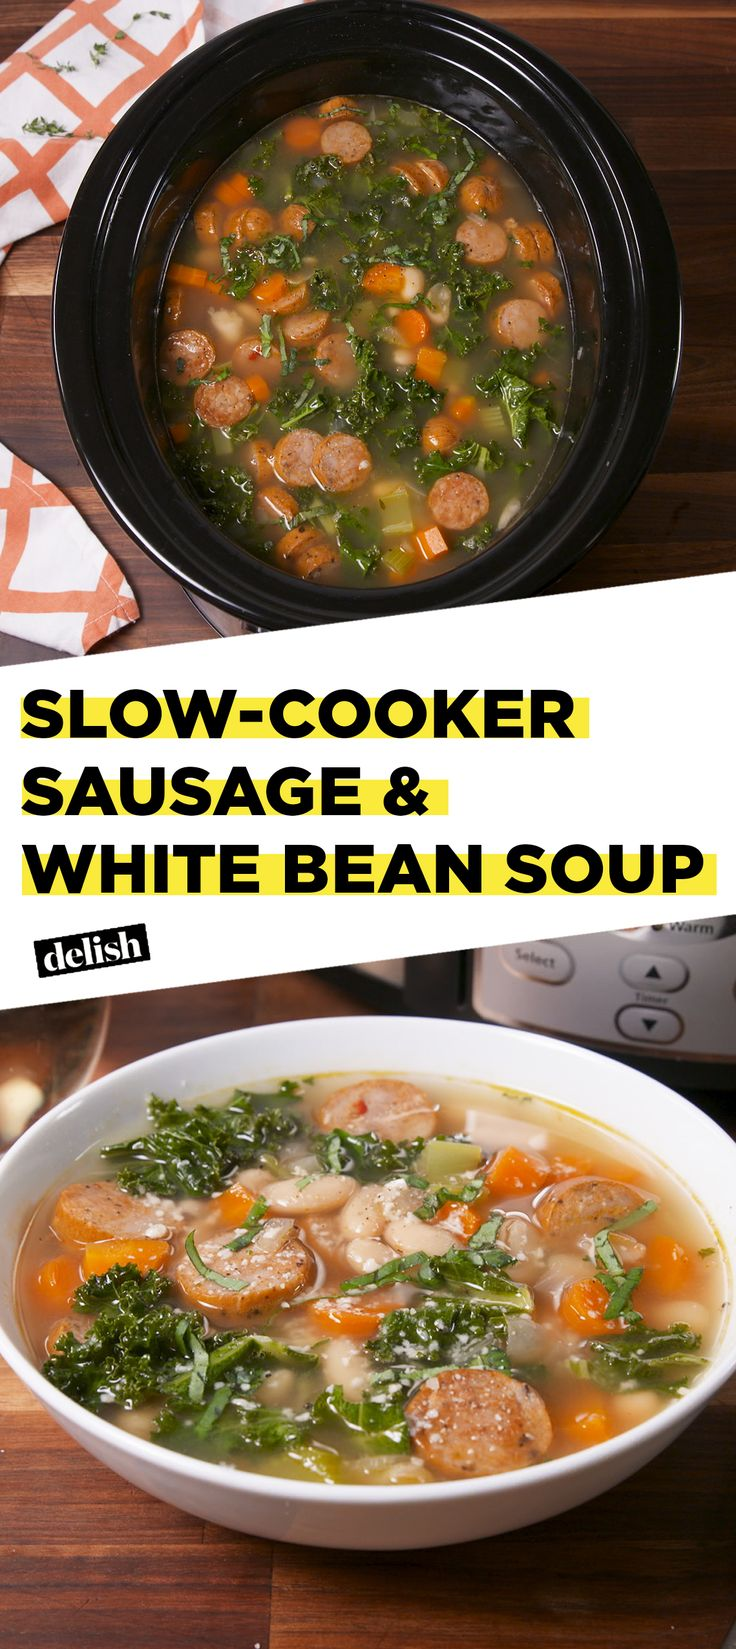 This slow-cooker sausage & white bean soup will cure your winter blues. Get the recipe at Delish.com. #delish #easyrecipe #recipe #soup #slowcooker #crockpot #celery #carrot